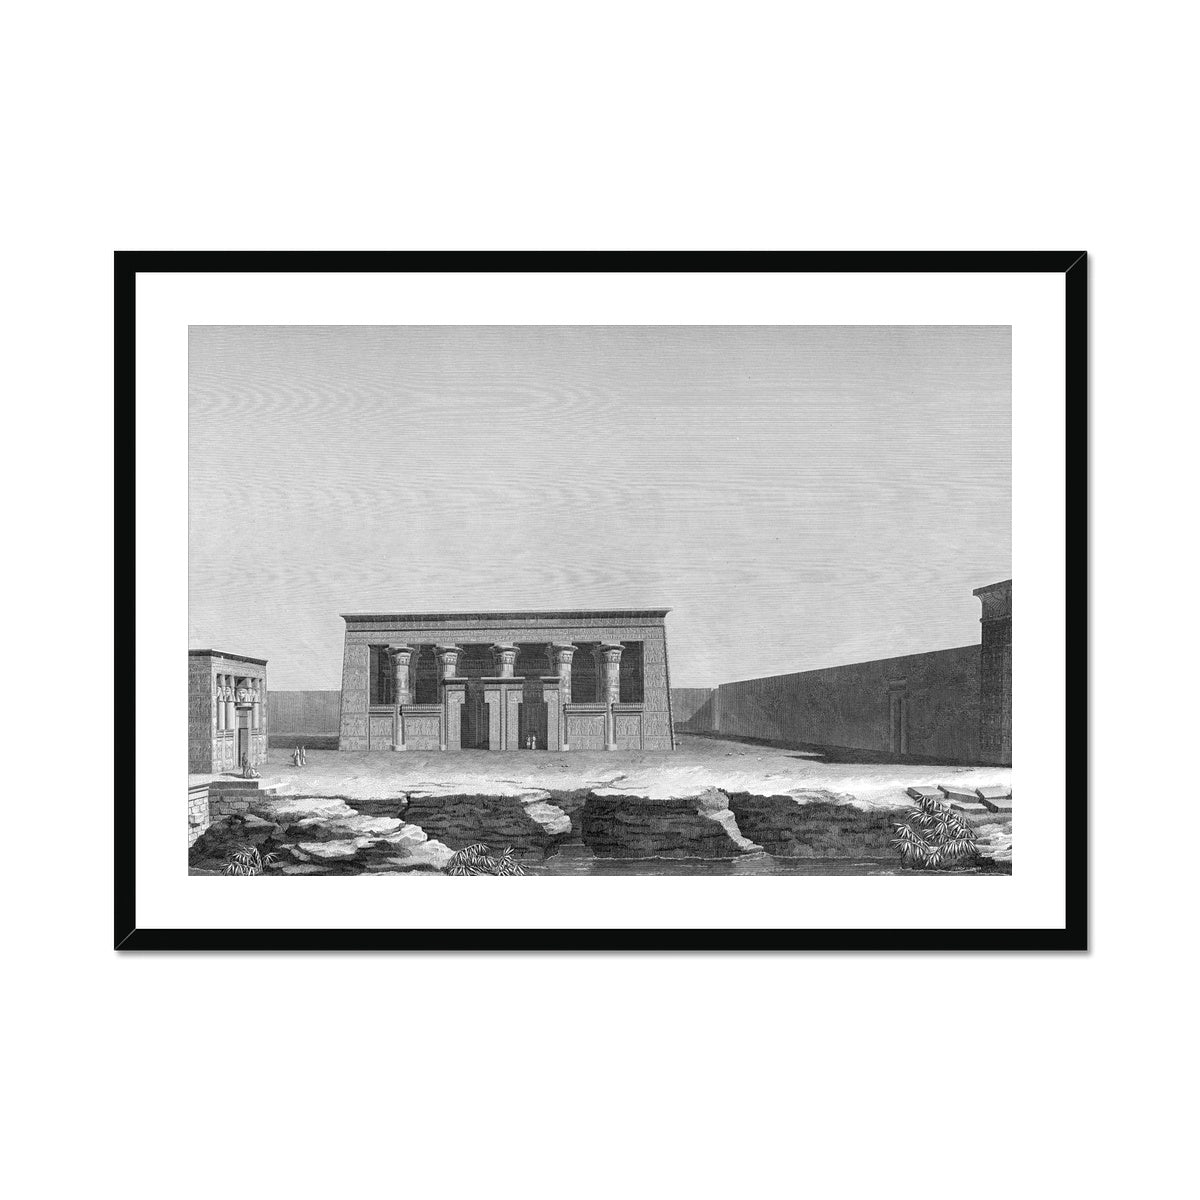 Perspective of the Two Temples - Kom Ombo Egypt -  Framed & Mounted Print